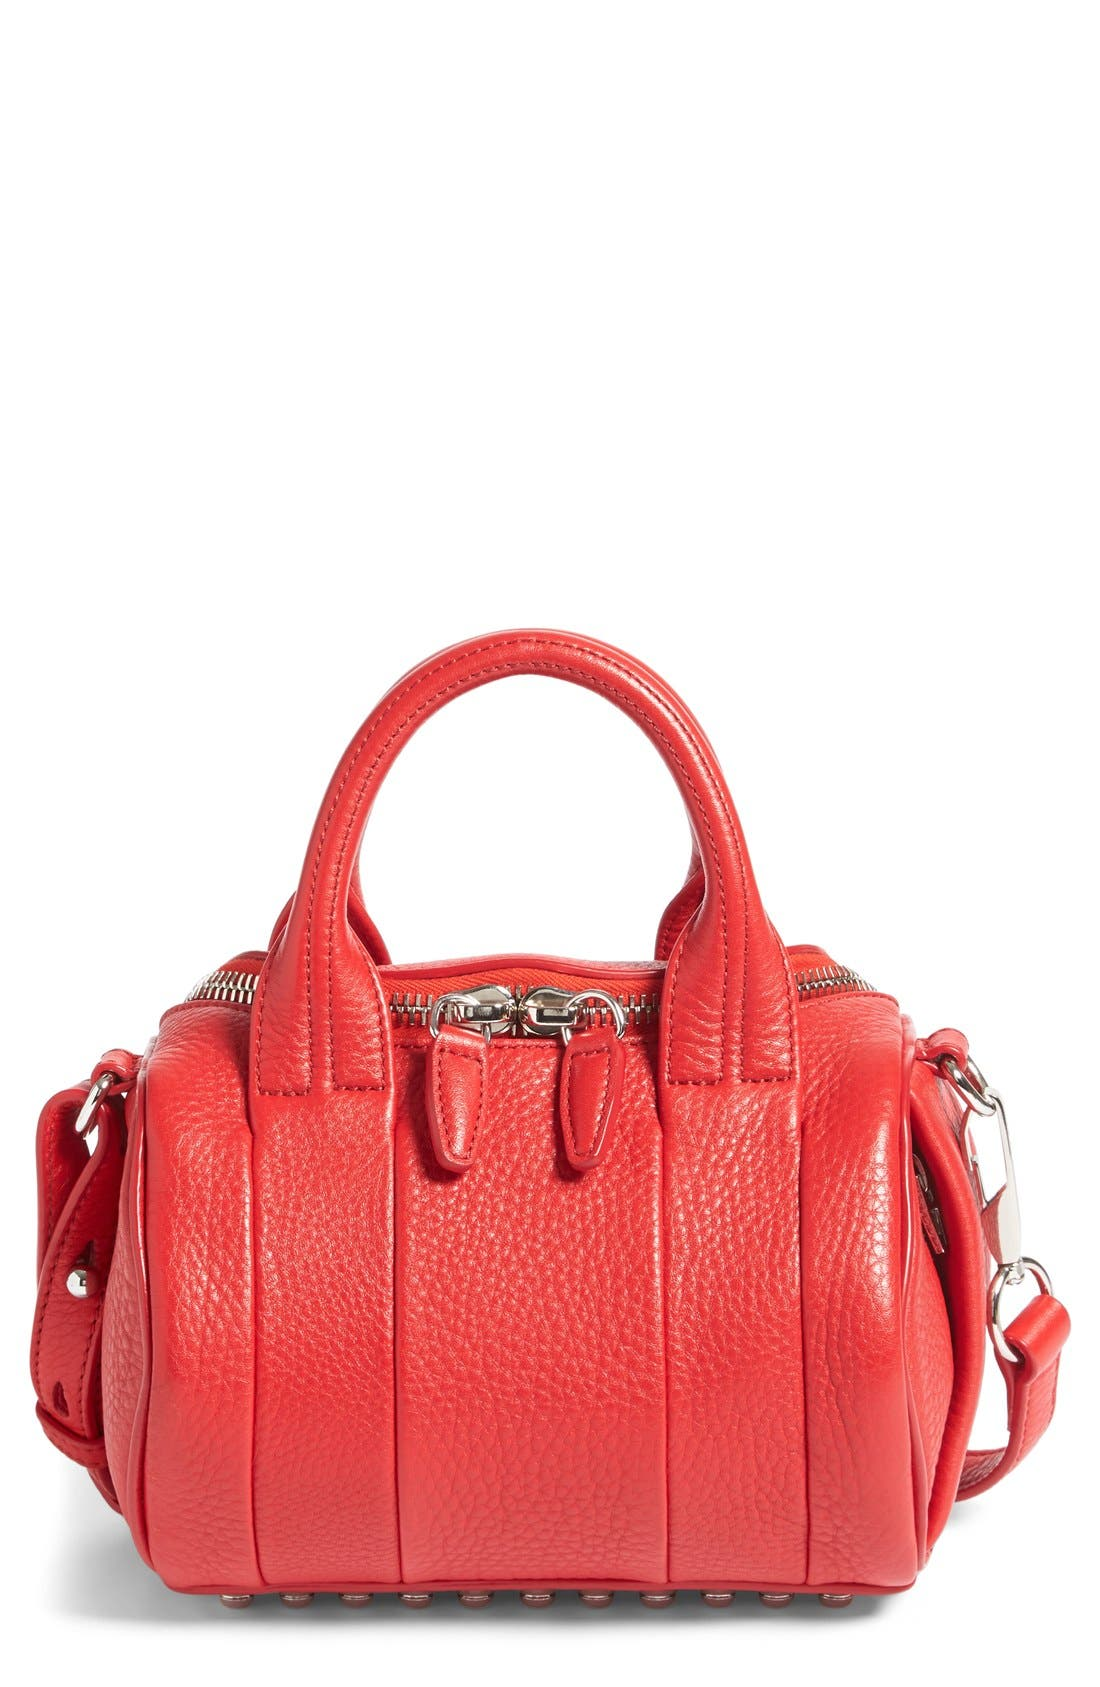 'Mini Rockie - Nickel' Leather Crossbody Satchel,                             Main thumbnail 2, color,